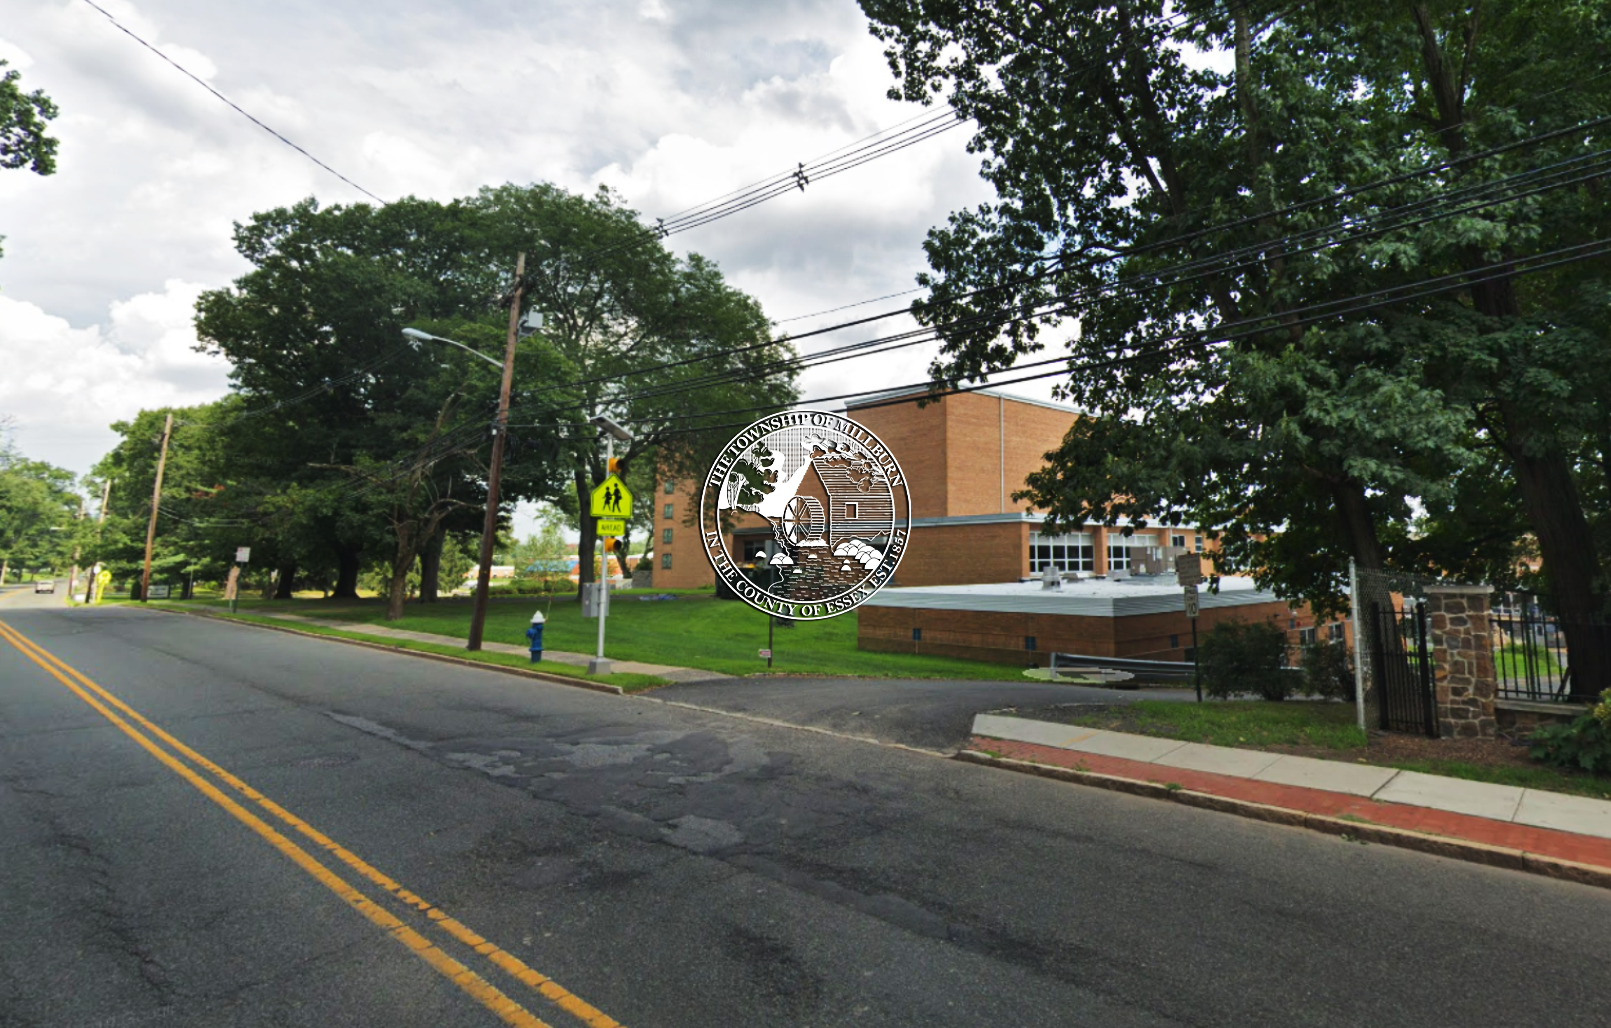 Google maps image of Millburn Avenue at Millburn High School